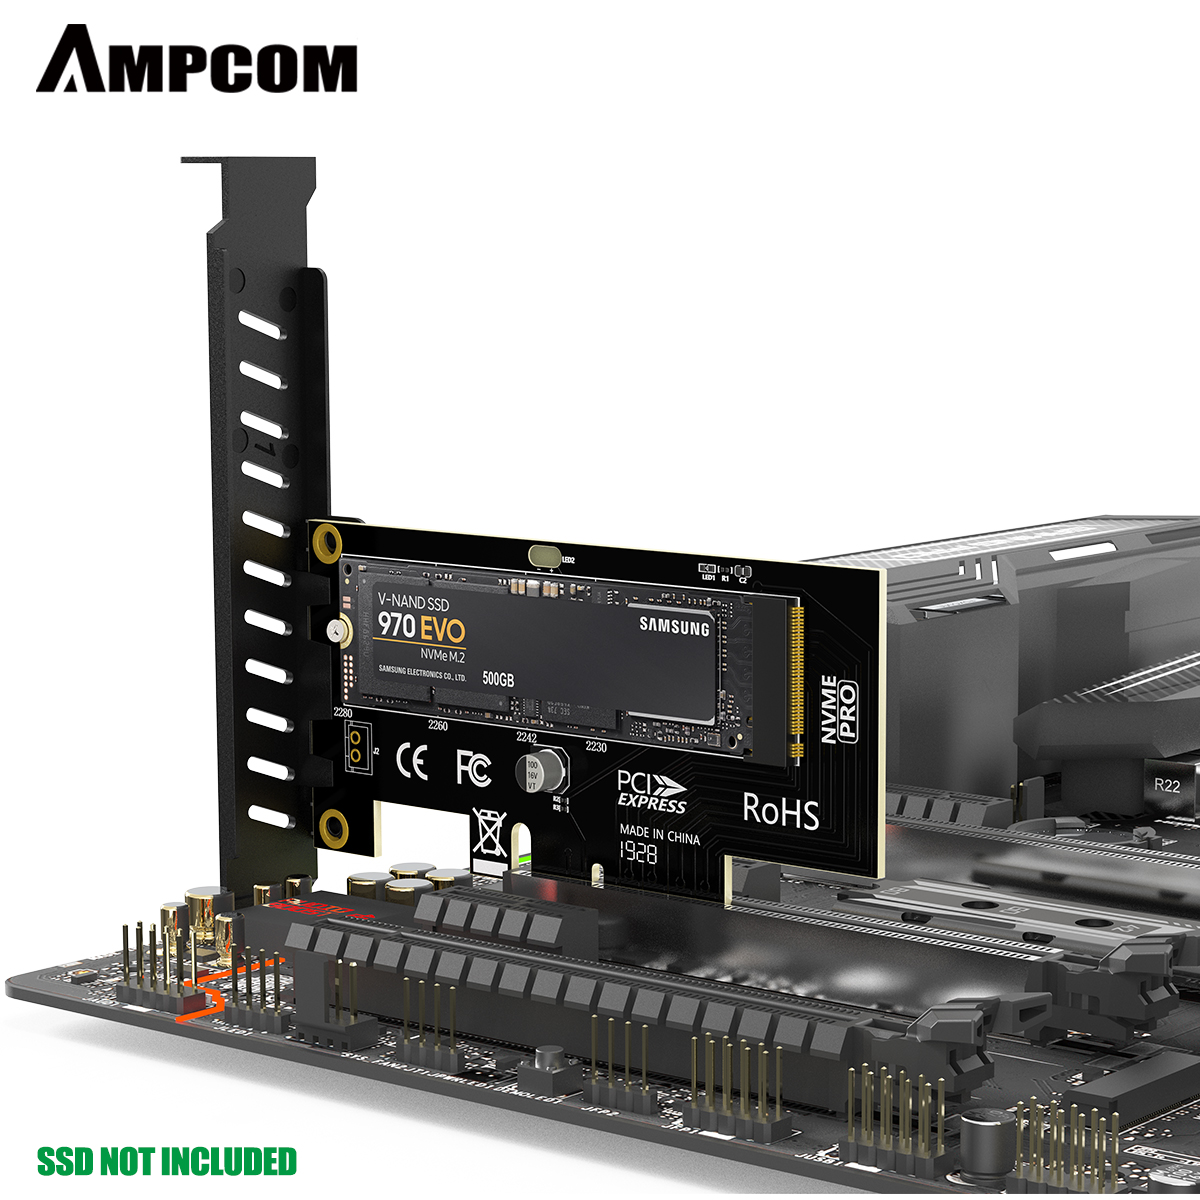 AMPCOM M.2 NVME SSD to PCIe 4.0 Adapter Card, 64Gbps SSD PCIe4.0 X4 Adapter for Desktop PC , PCI-E GEN4 Full Speed